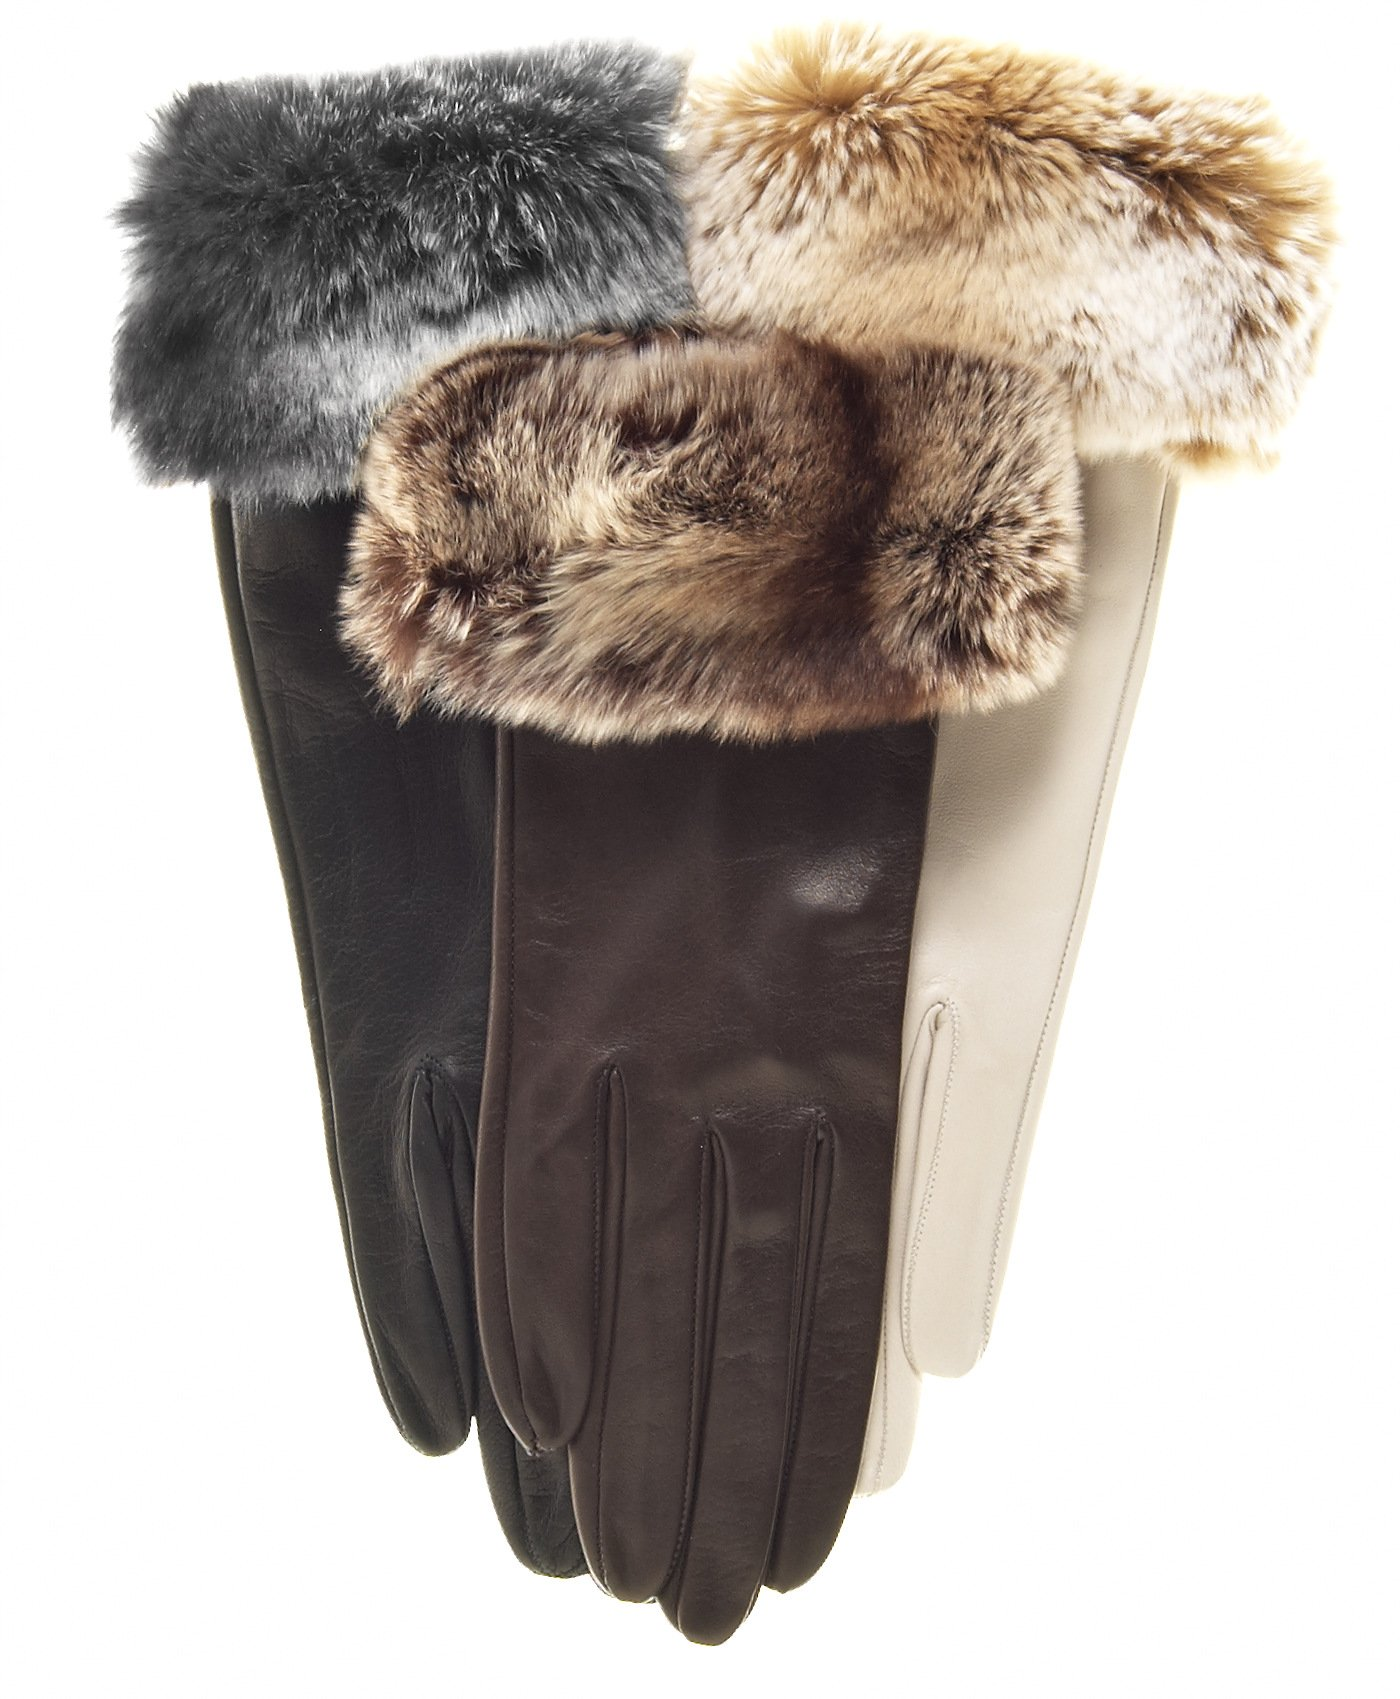 Fratelli Orsini Women's Orylag Rabbit Fur Cuff Cashmere Lined Leather Gloves Size 7 1/2 Color Brown by Fratelli Orsini (Image #1)